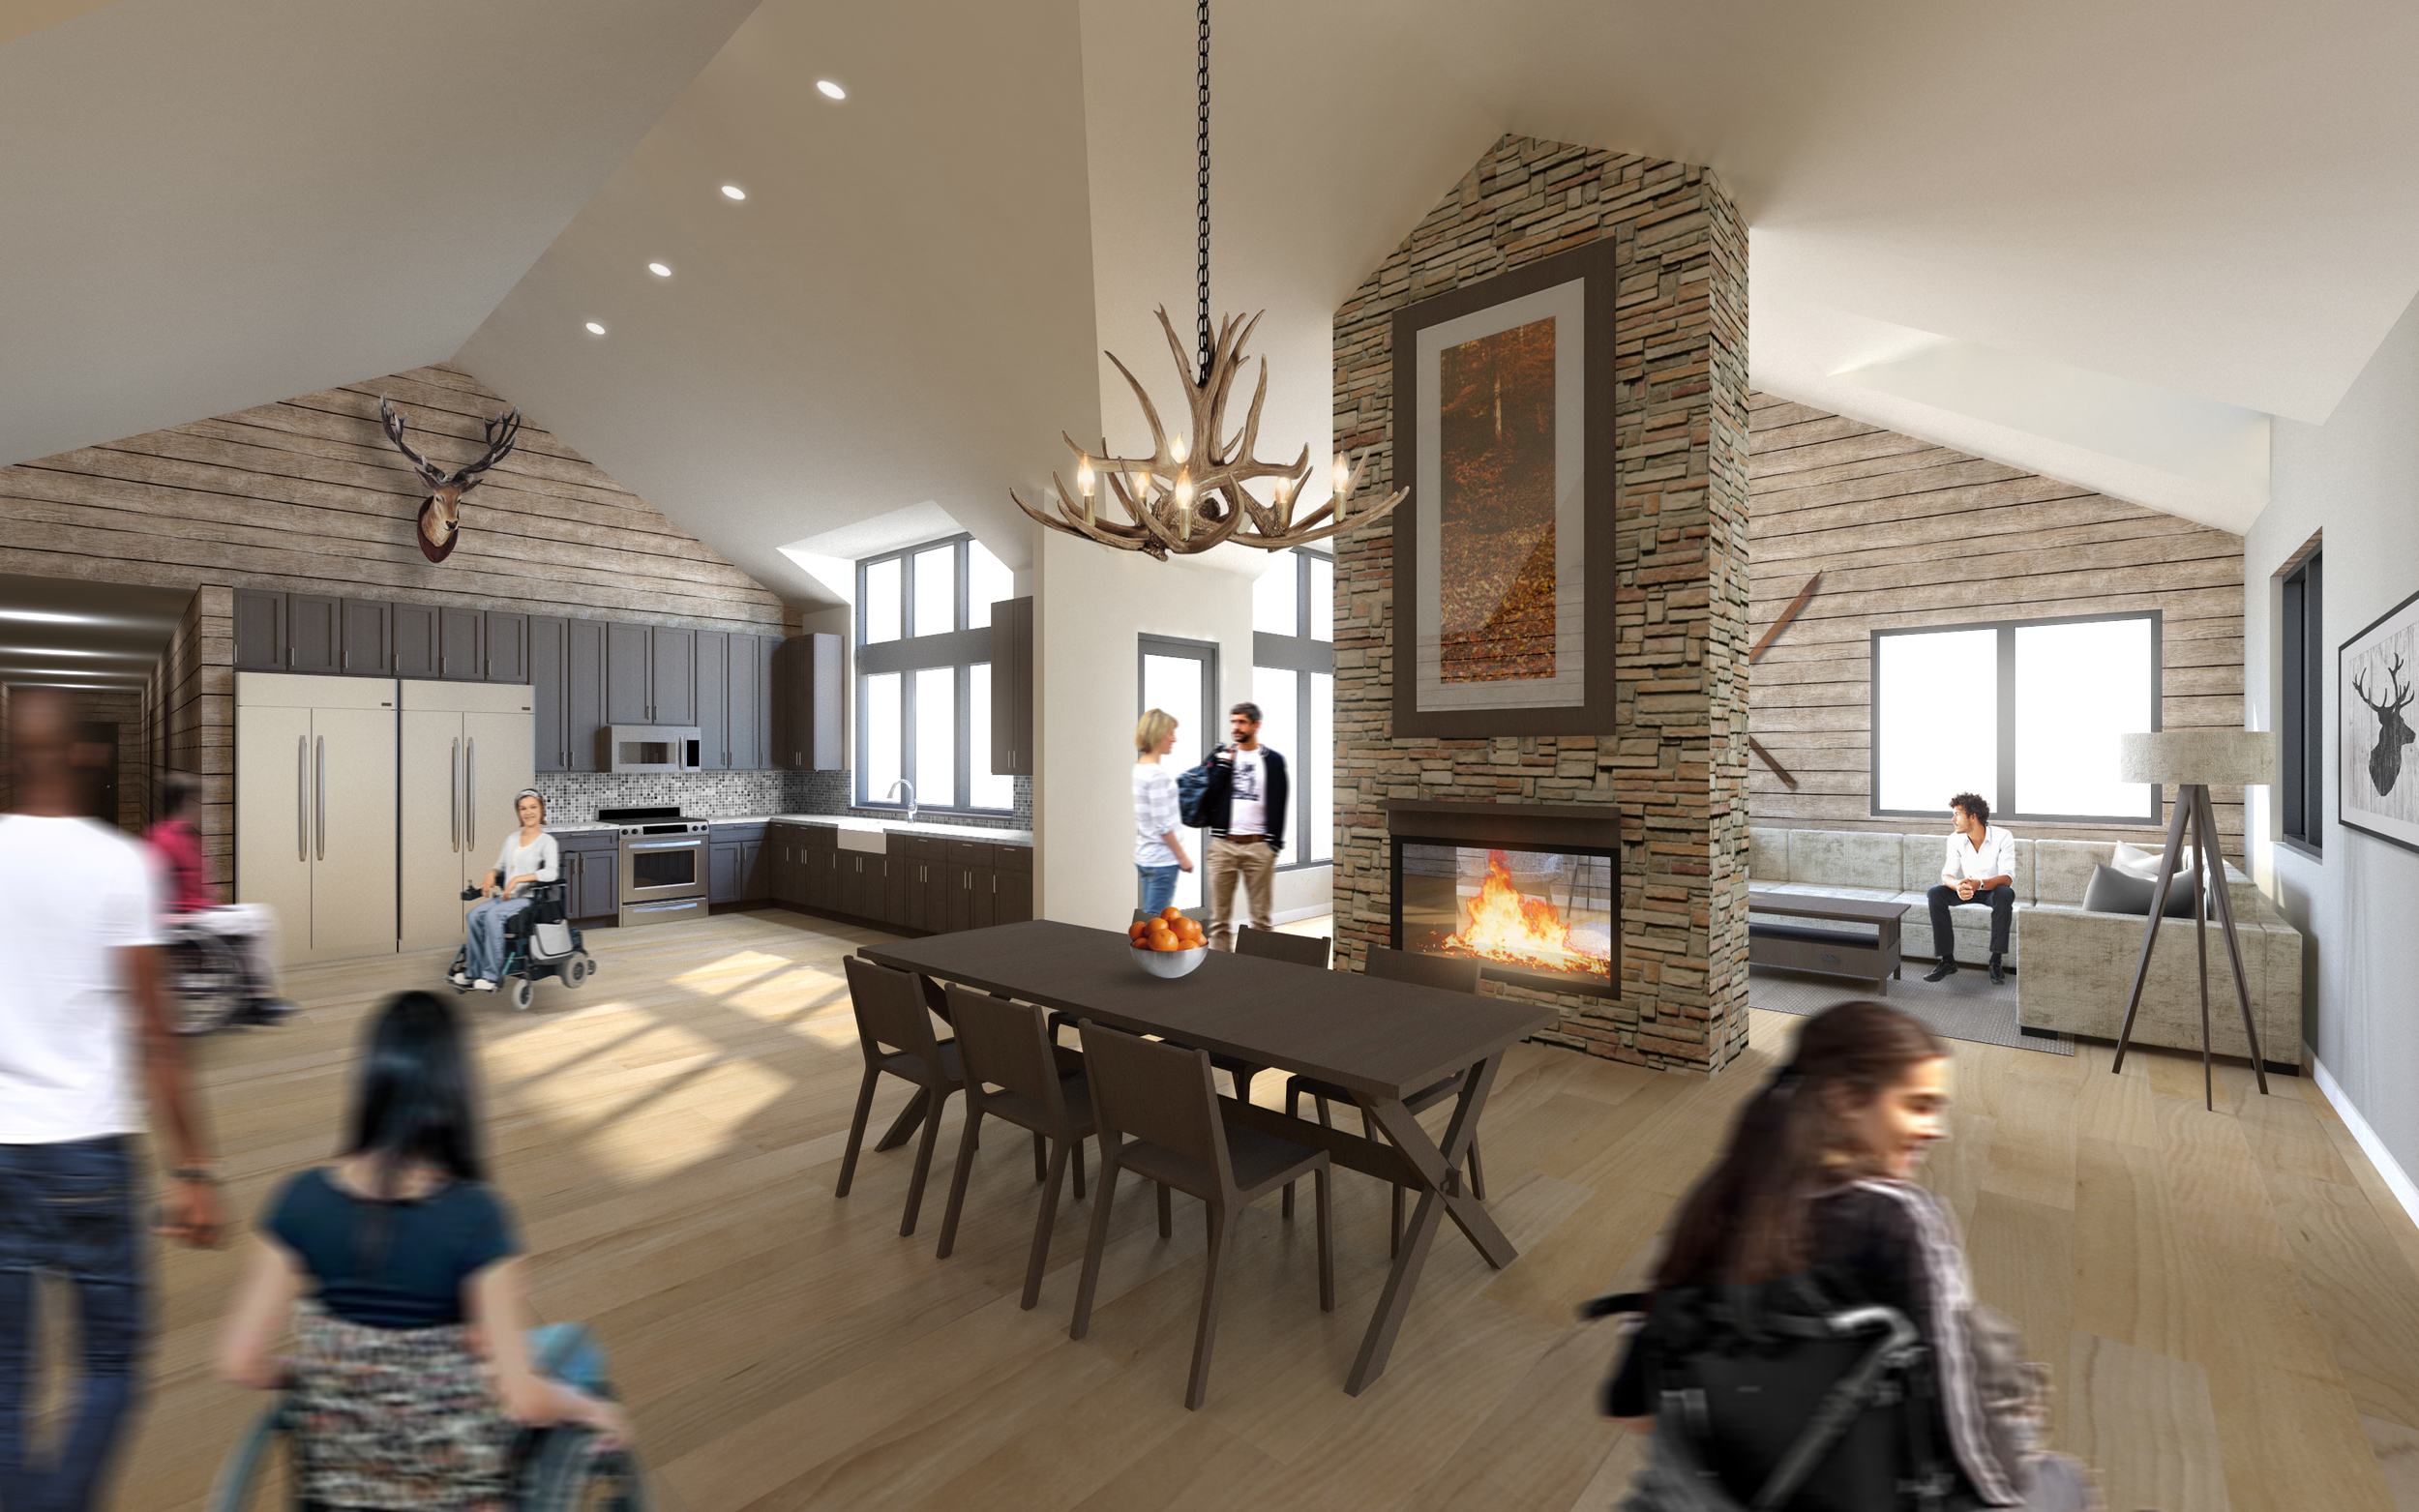 Dixie Lodge kitchen and living room areas.